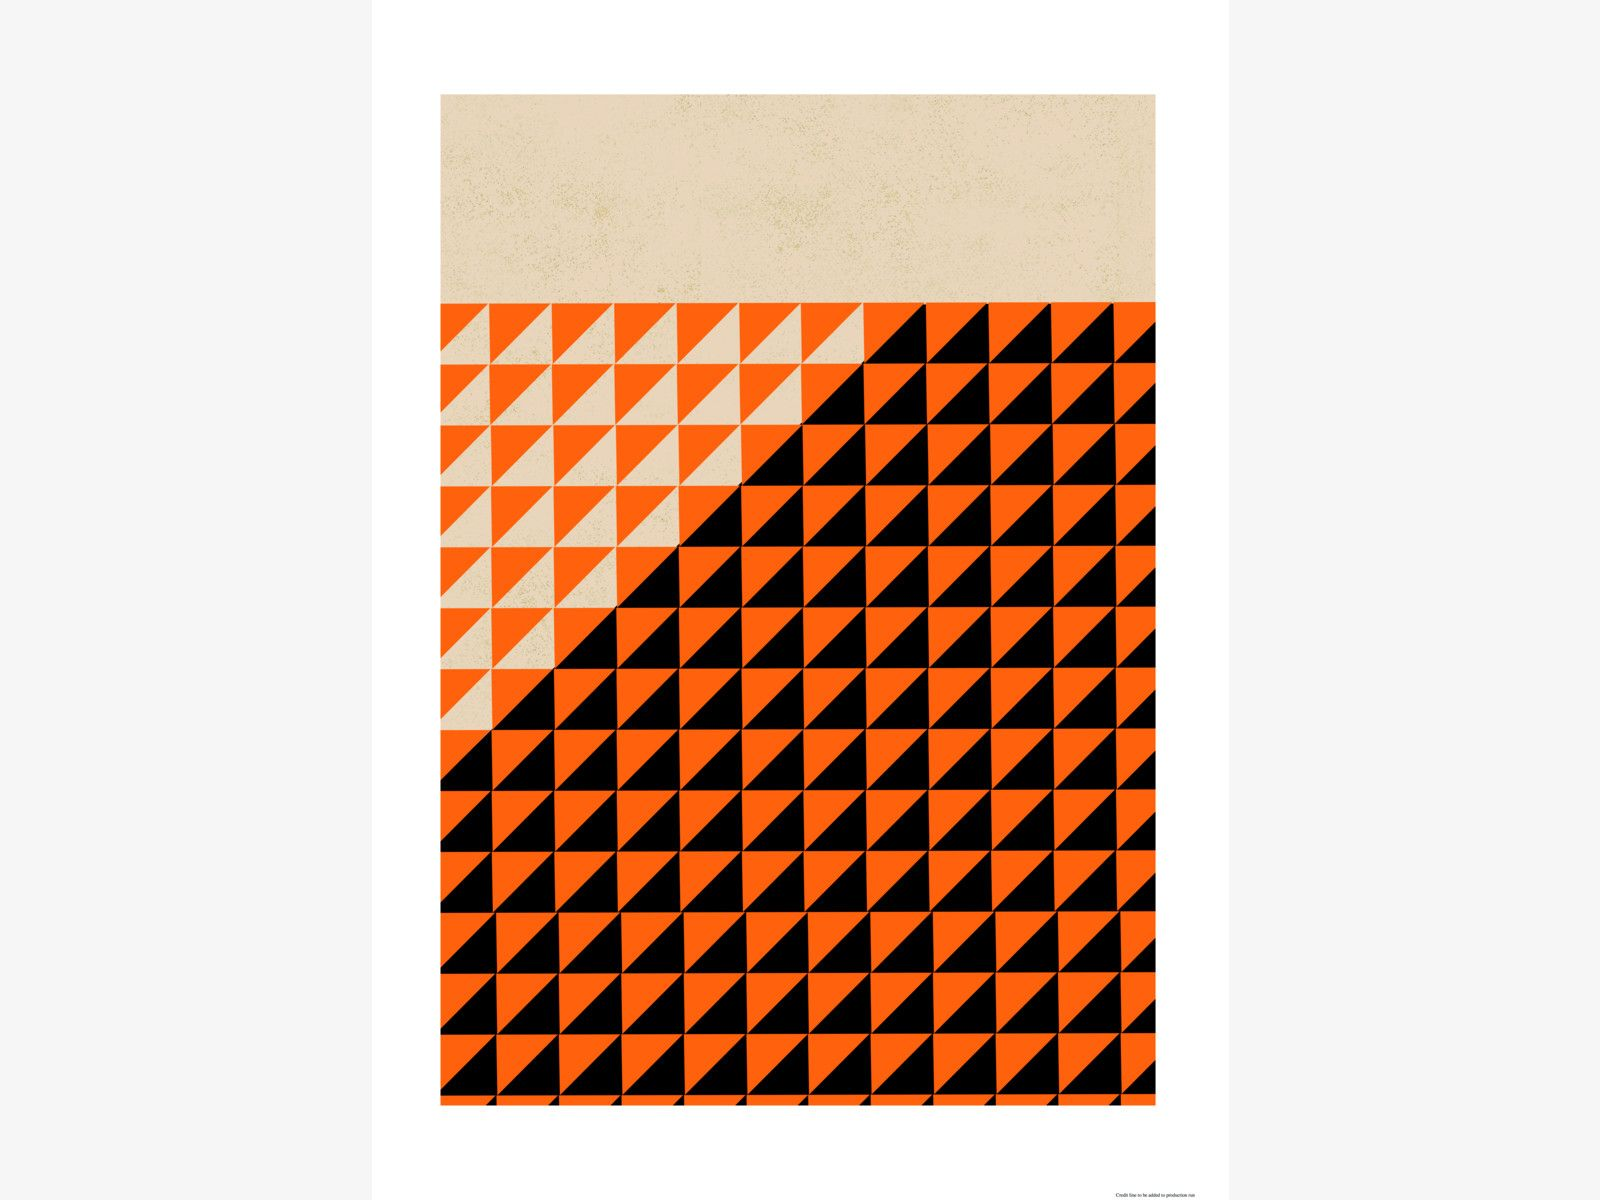 TRI GRAPHIC MULTI-COLOUR Paper 50 x 70cm print by Rocket 68 - HabitatUK